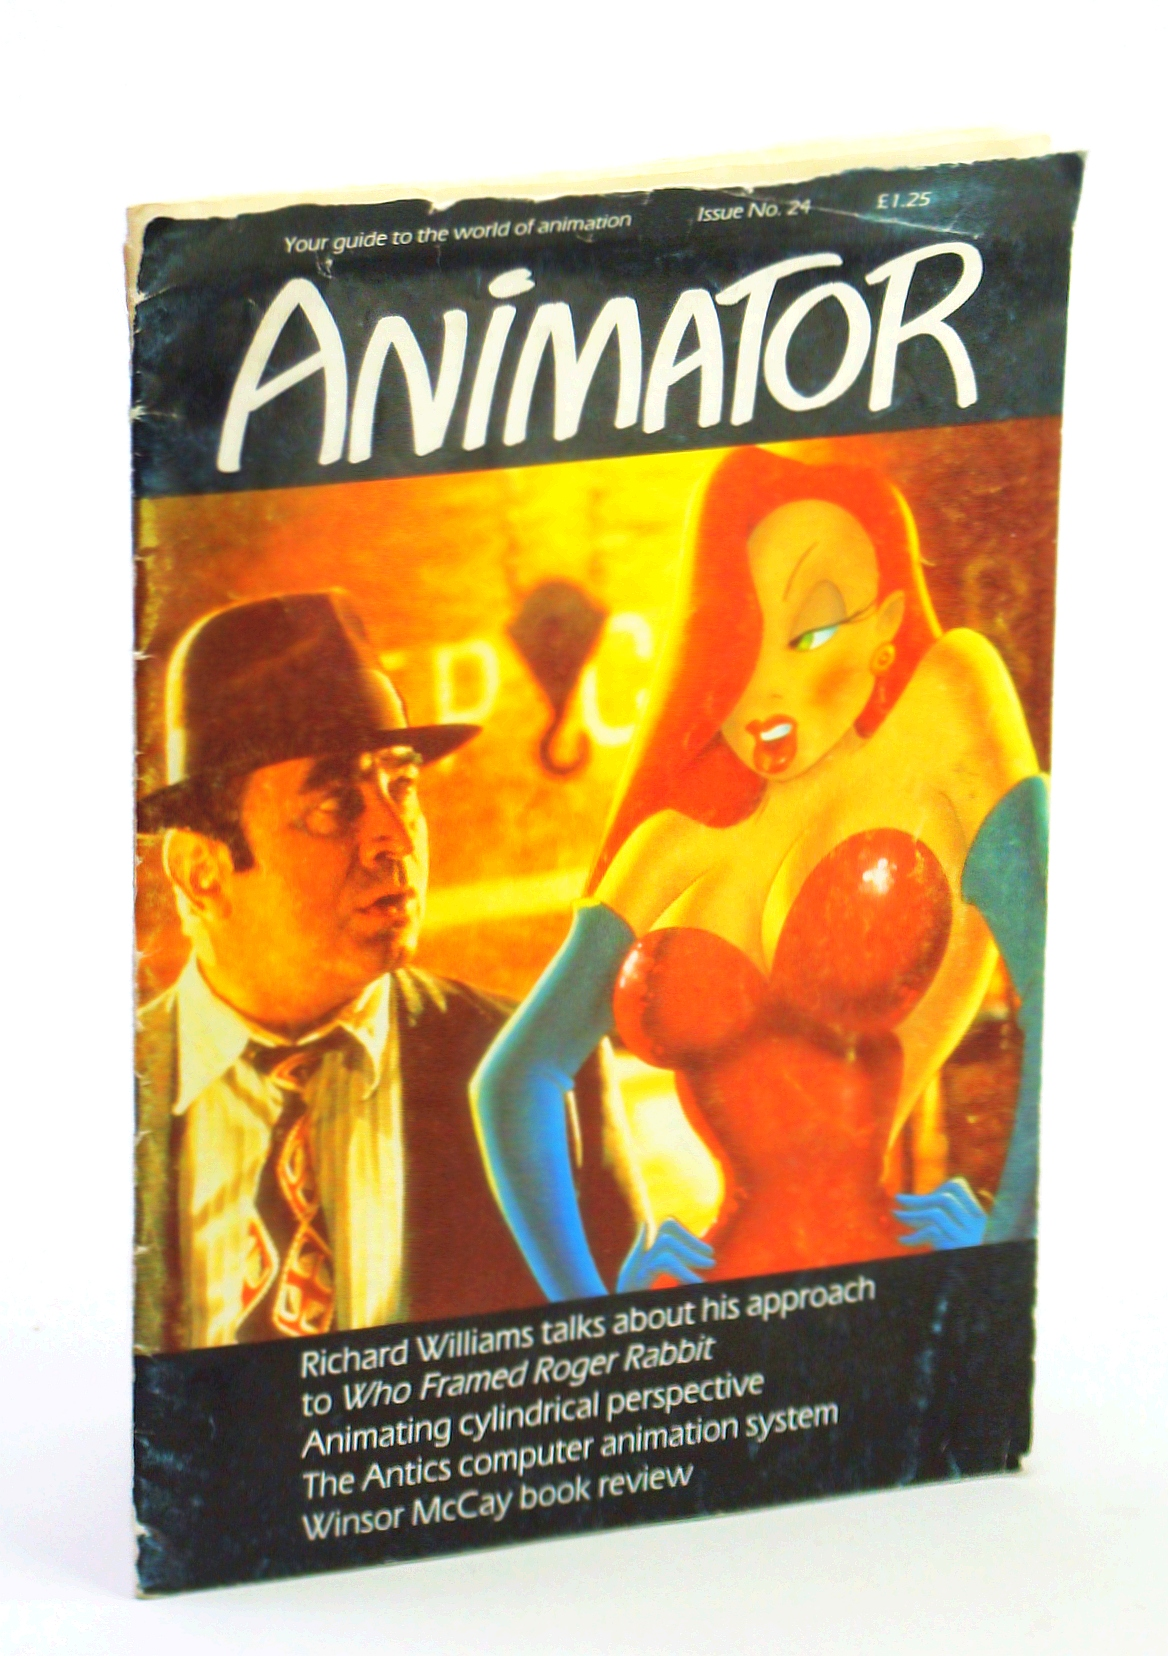 """Image for Animator [Magazine] - Your Guide to the World of Animation, Issue No. 24, December 1988 - Richard Williams and """"Who Framed Roger Rabbit"""""""